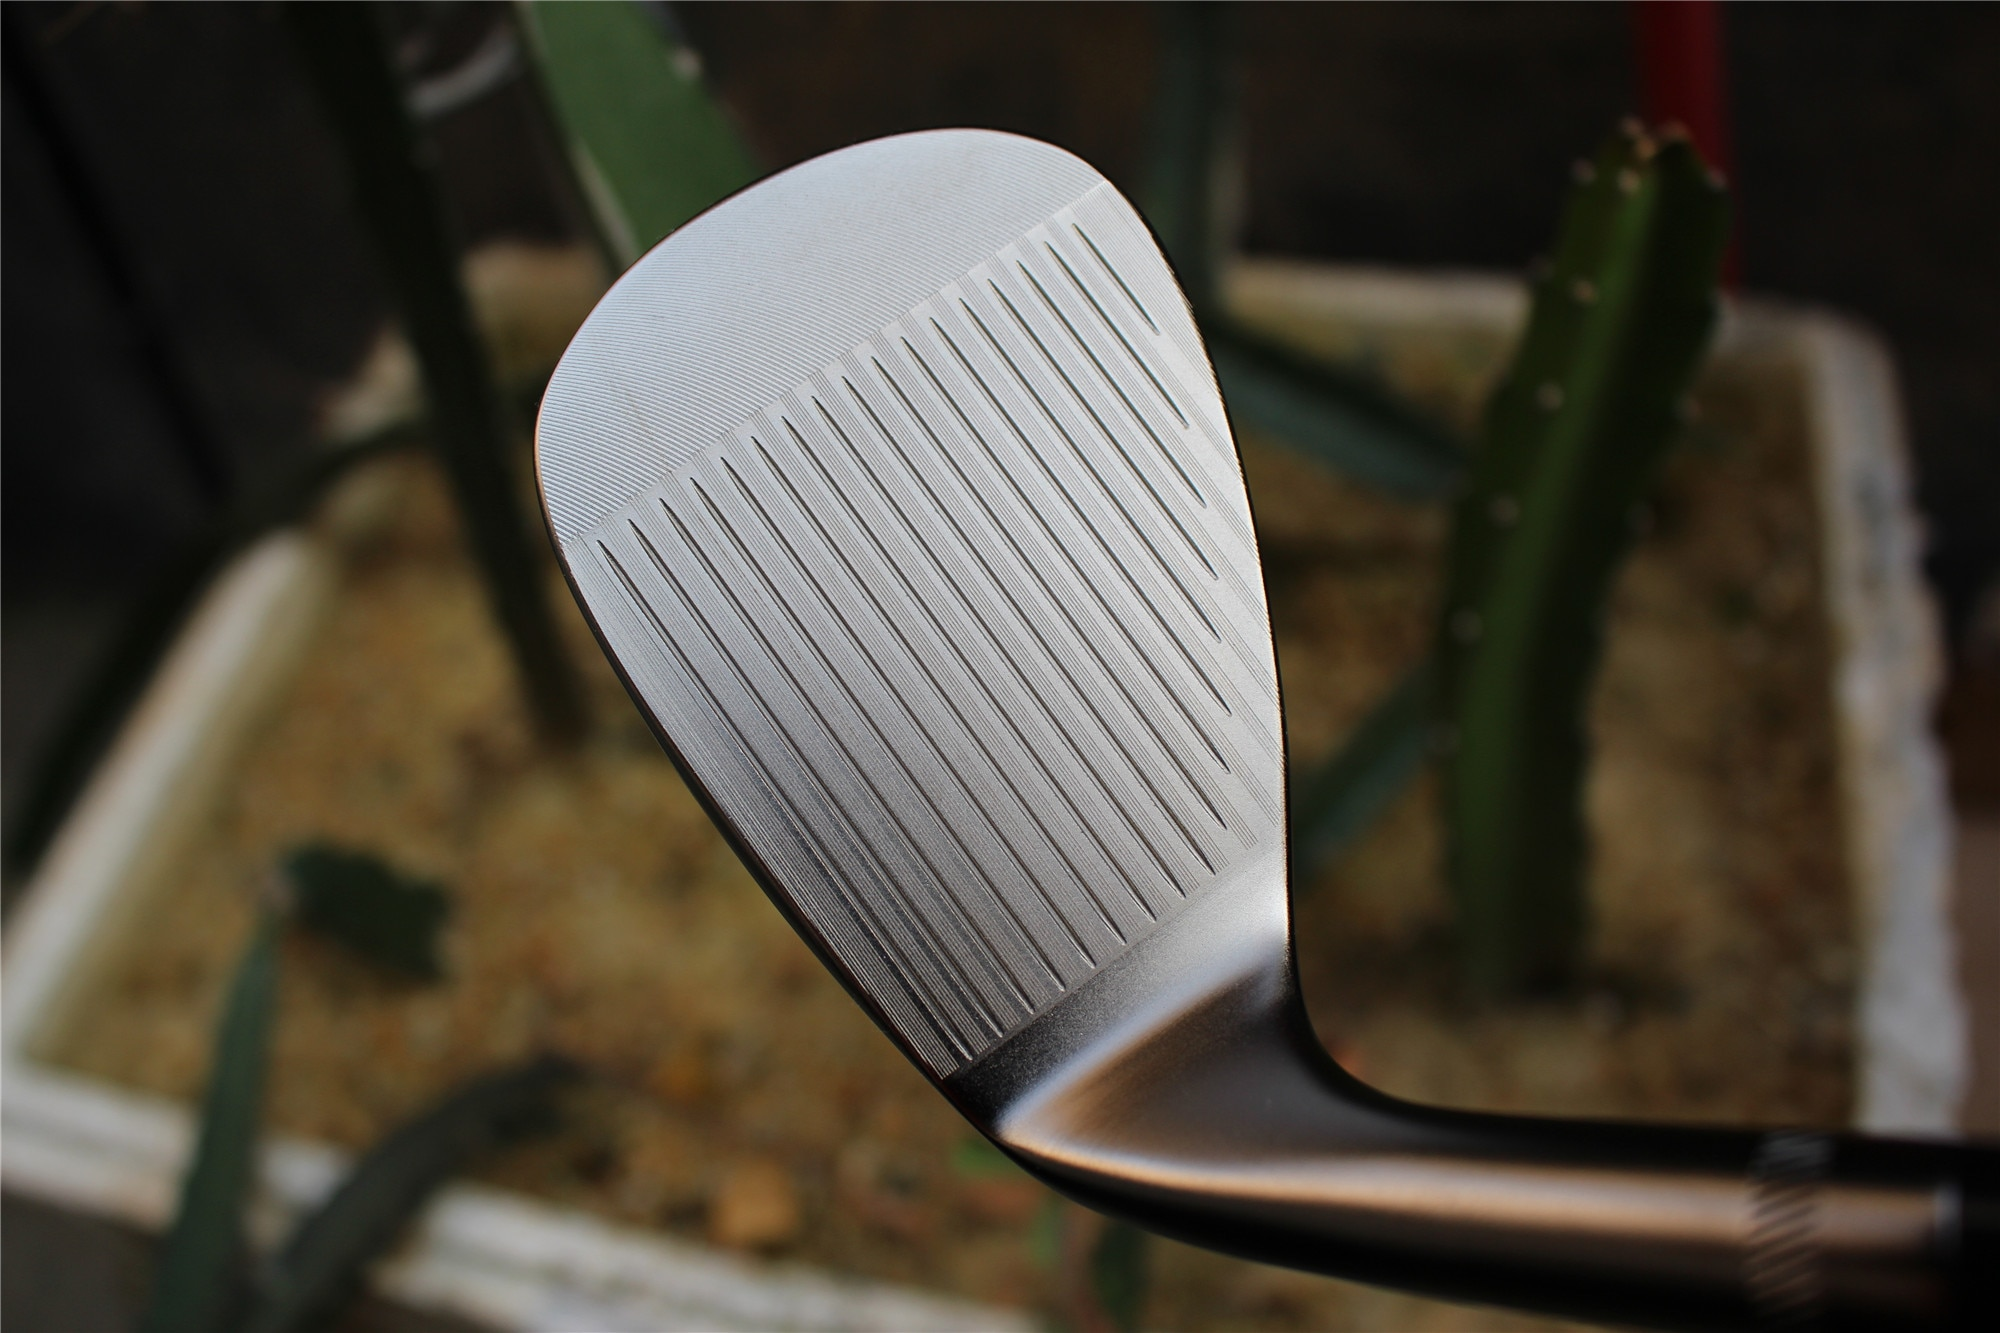 Golf clubs Golf SM6 wedges Brown Right Handed 52-12F 56-10S 60-04L degrees  S300 or R300 Steel shaft